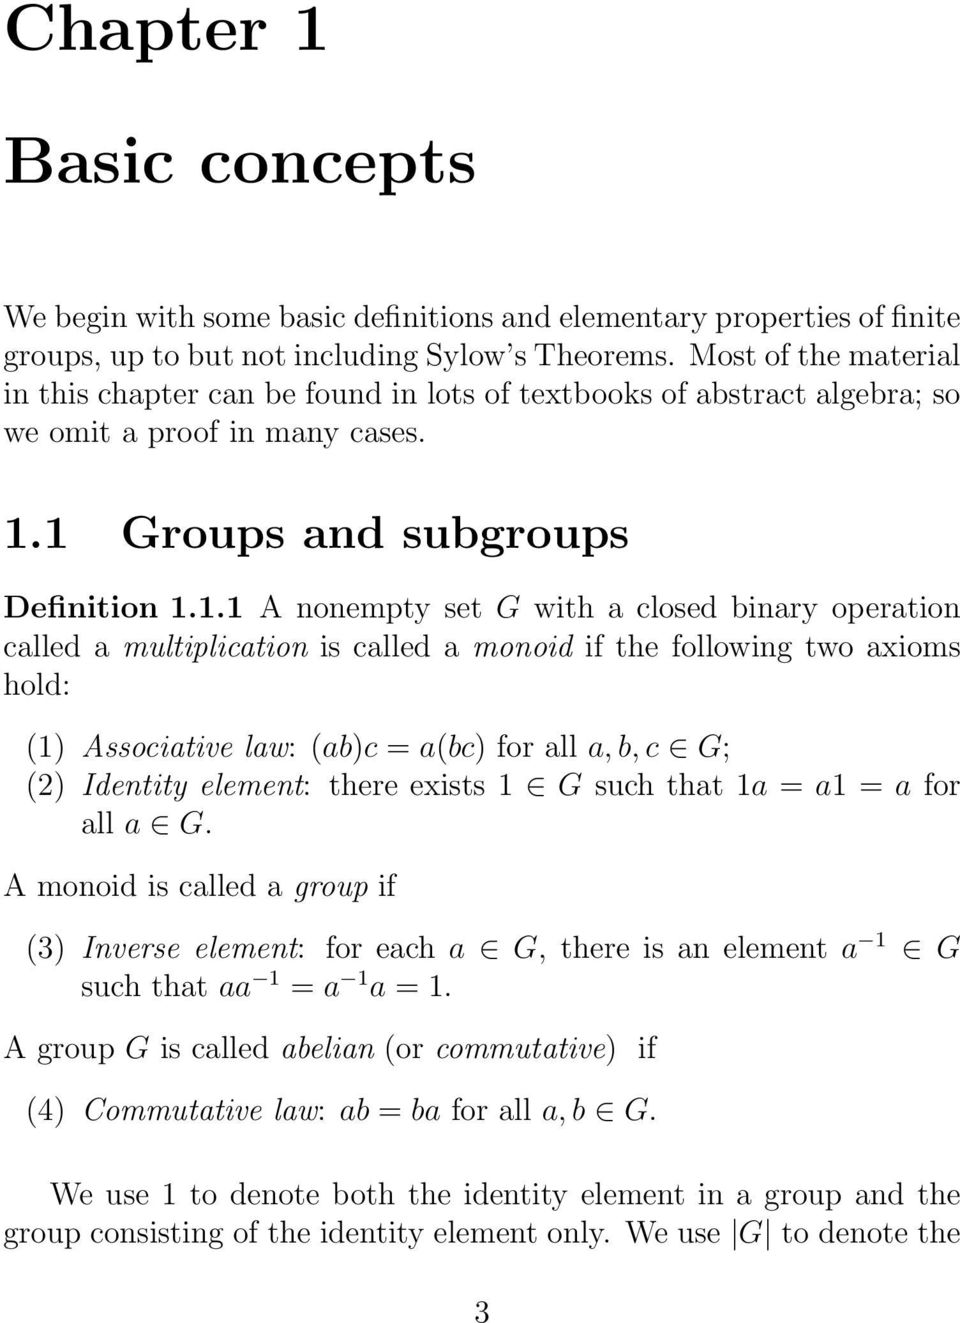 1 Groups and subgroups Definition 1.1.1 A nonempty set G with a closed binary operation called a multiplication is called a monoid if the following two axioms hold: (1) Associative law: (ab)c = a(bc)